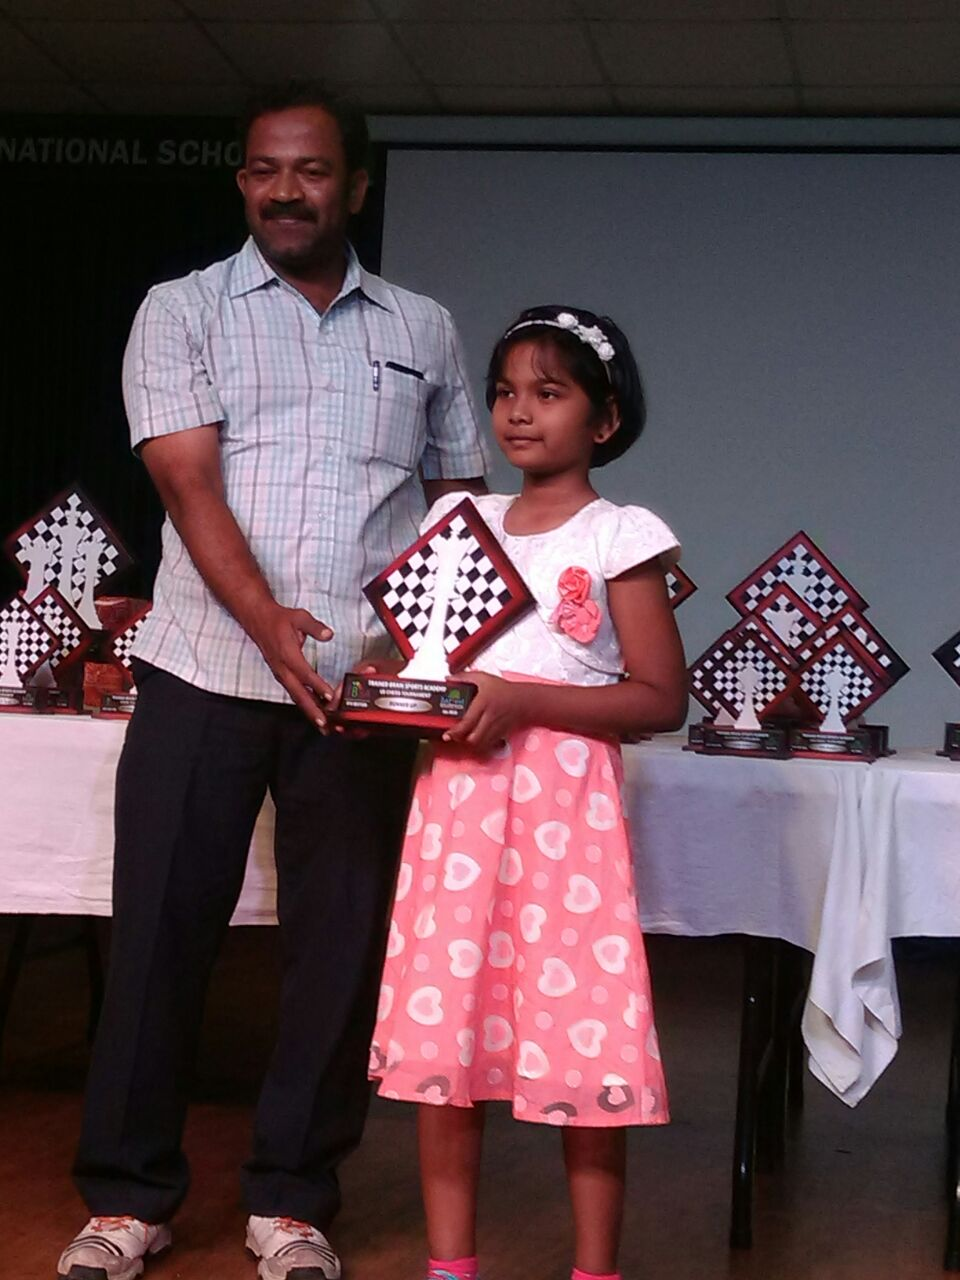 Jesslyn Jinisha places 2nd in U8 Category - Girls of the 8th TBSA Rapid Chess Tournament held in Bangalore